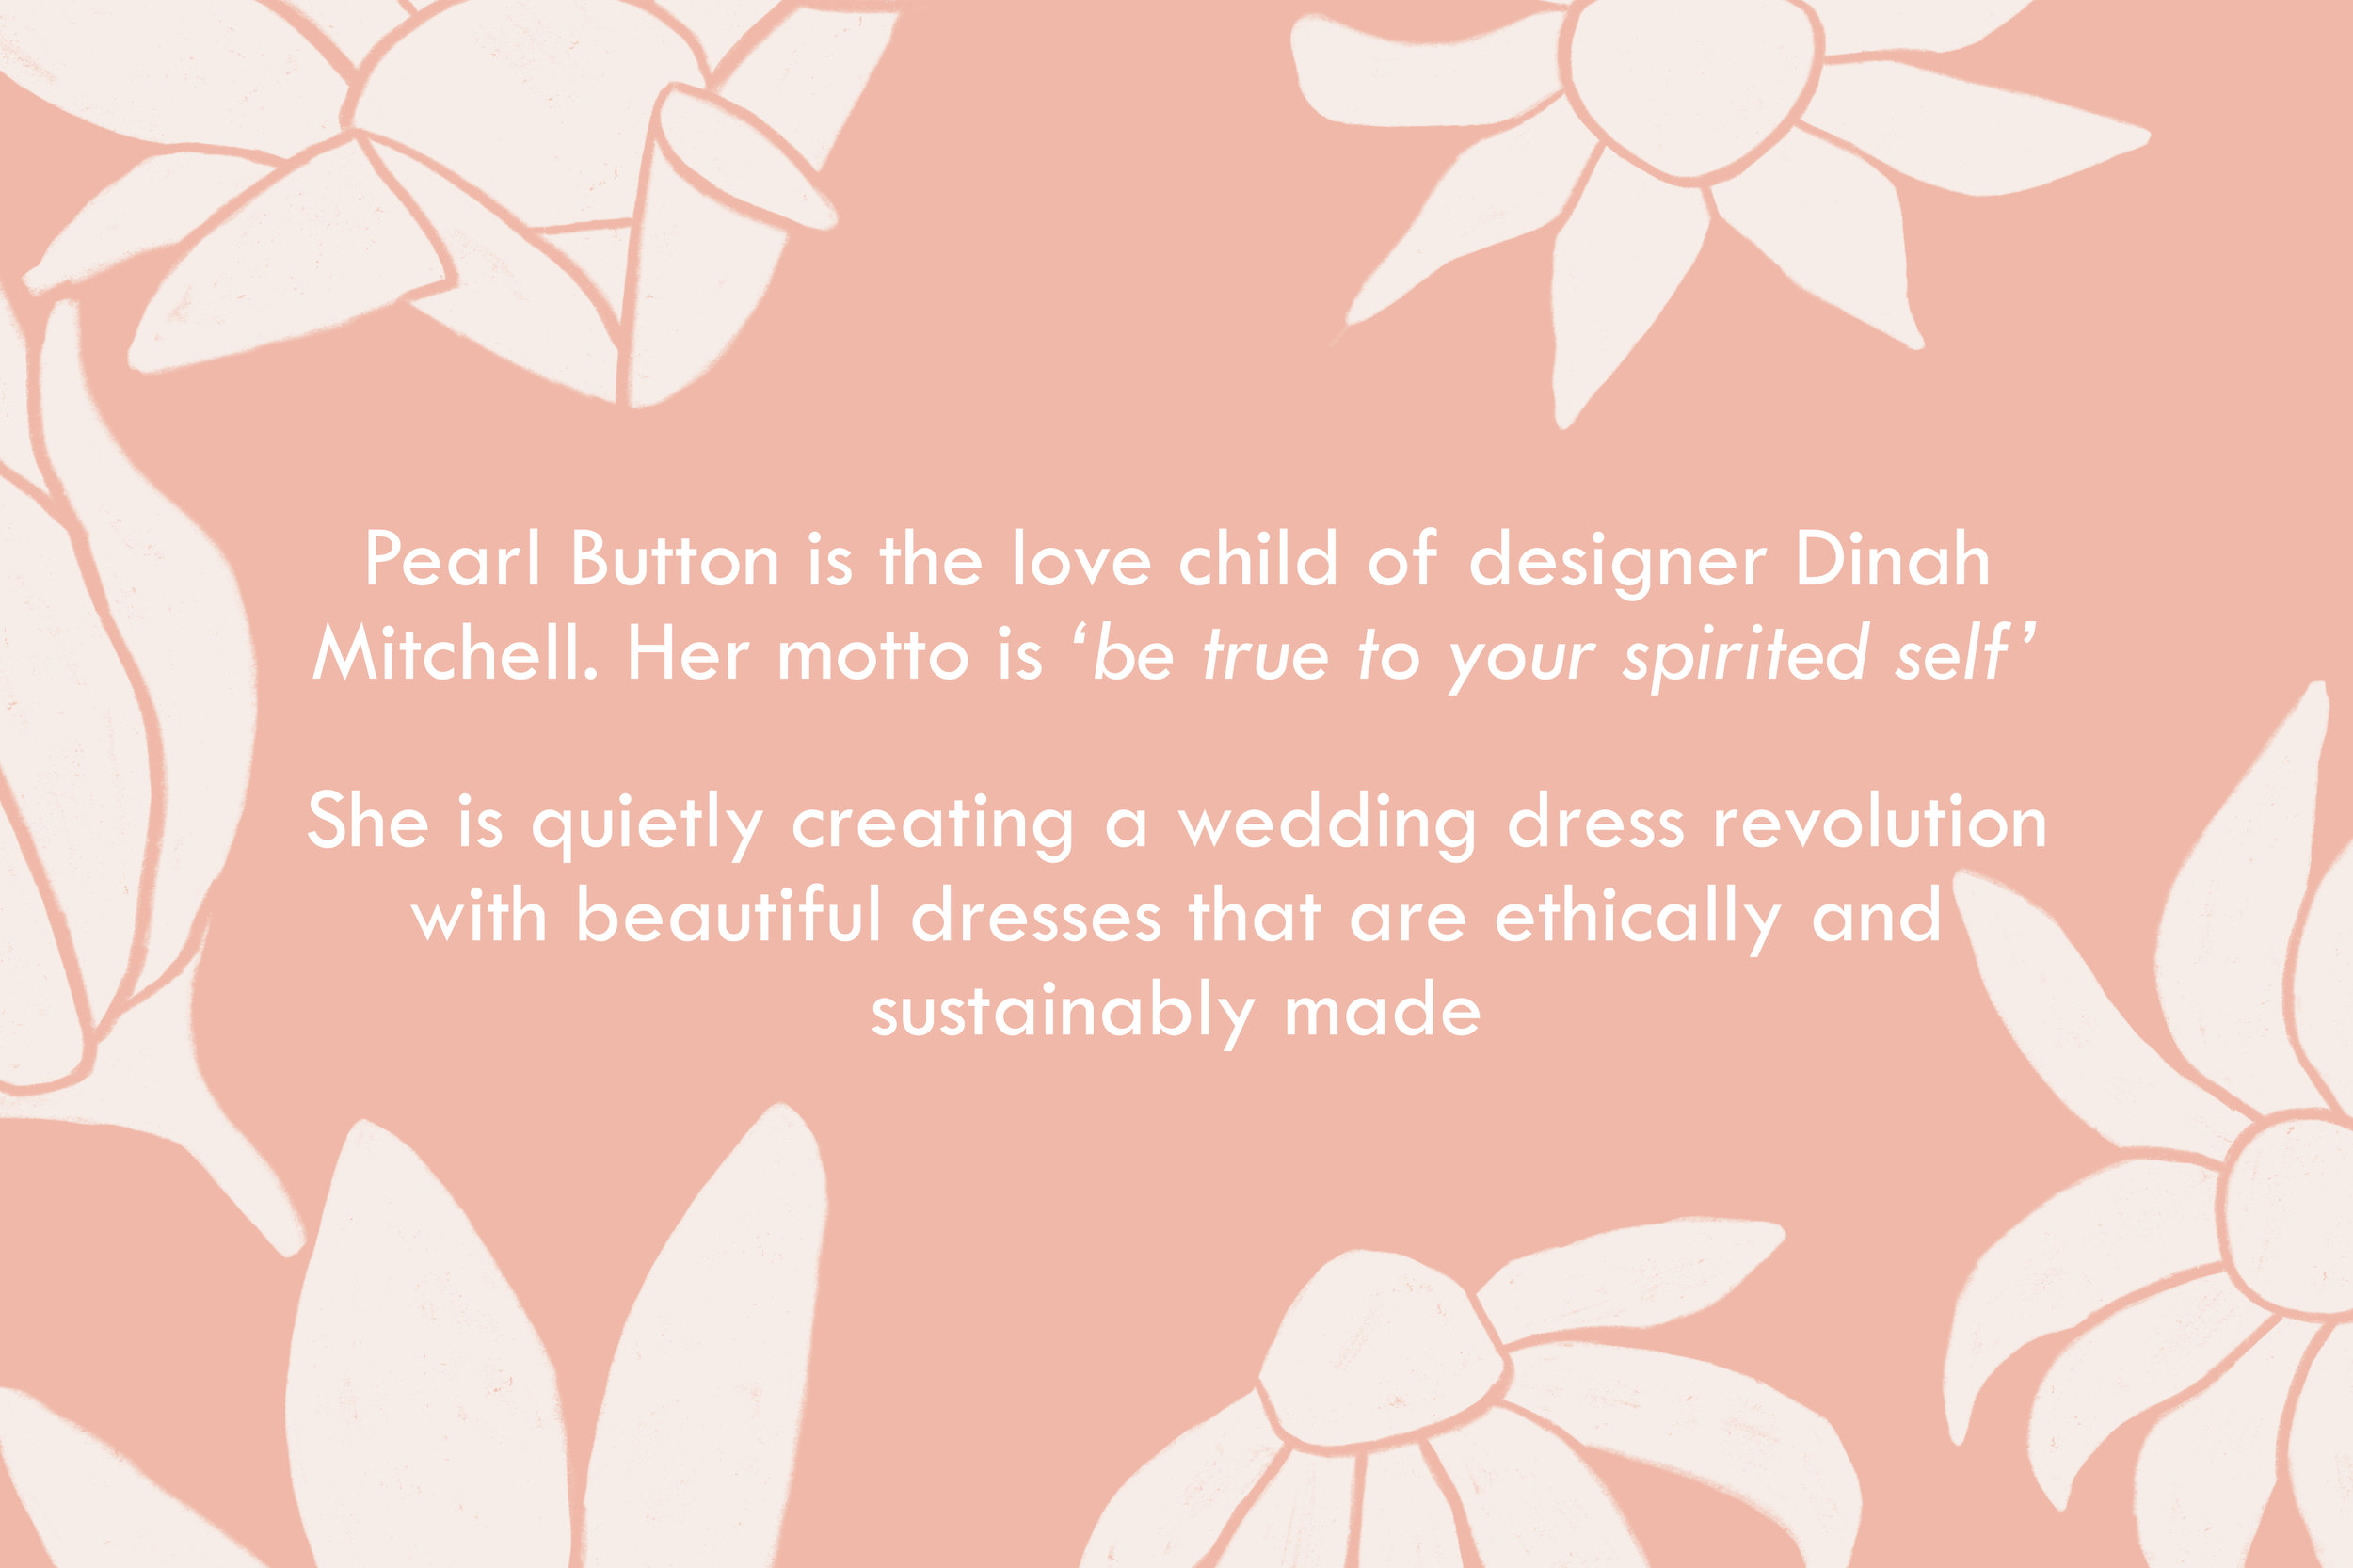 pearl-button-bridal-ethical-ethos-motto.jpg